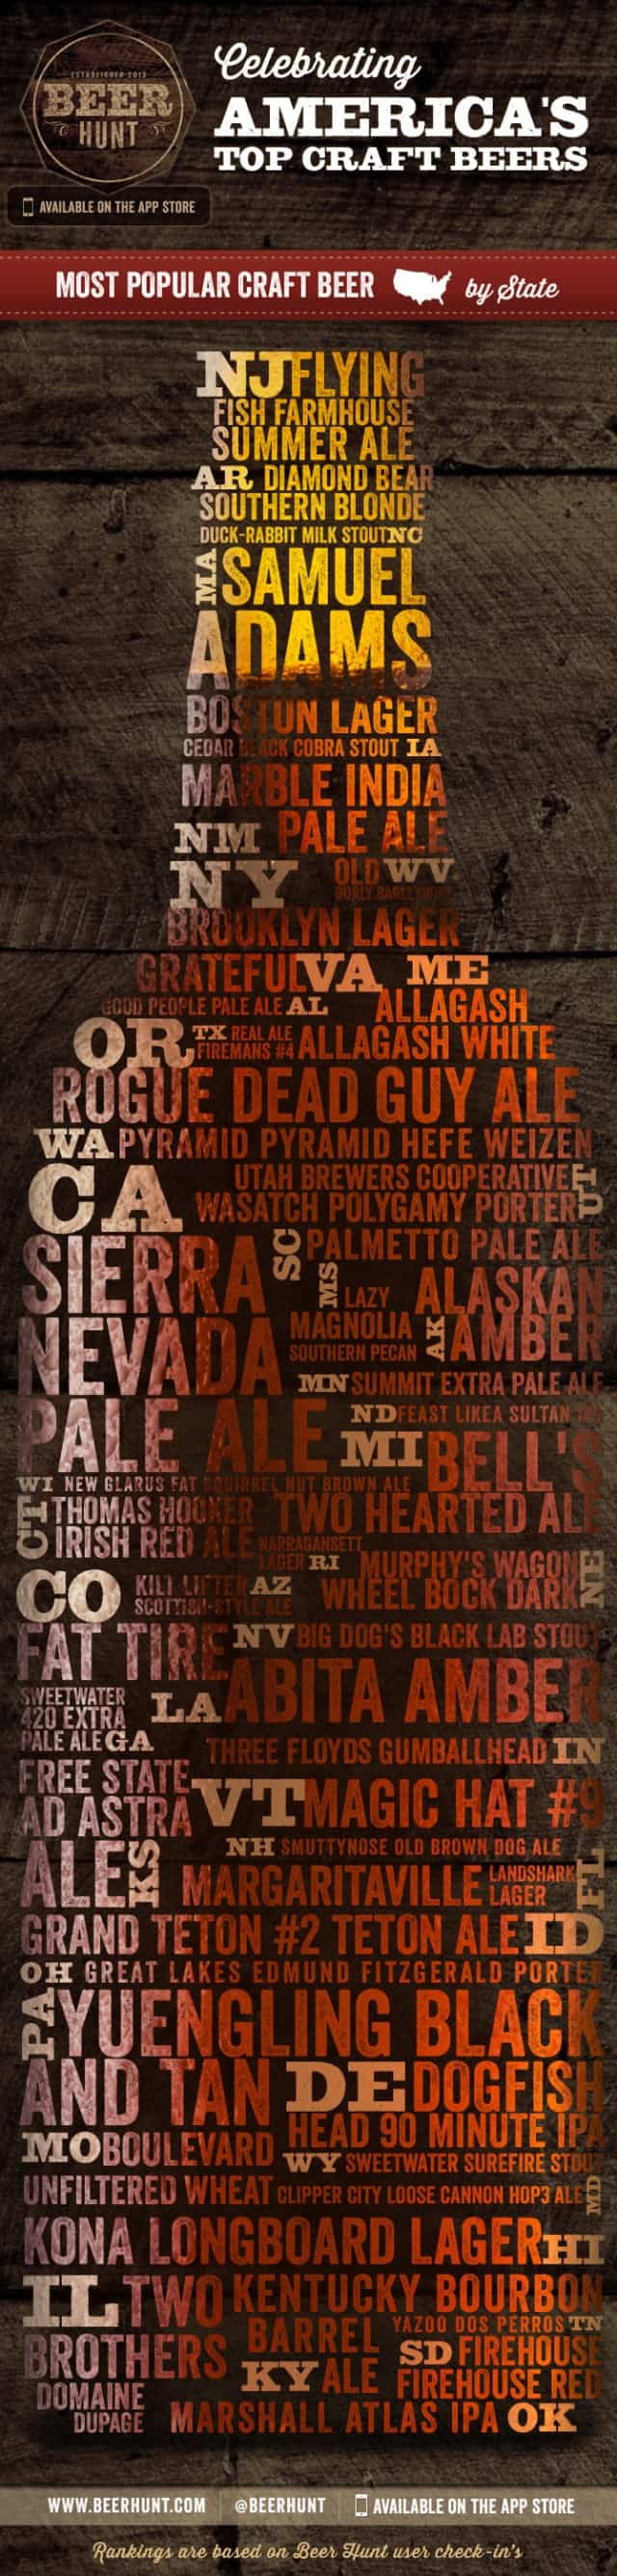 Most Popular Craft Beer By State [infographic]